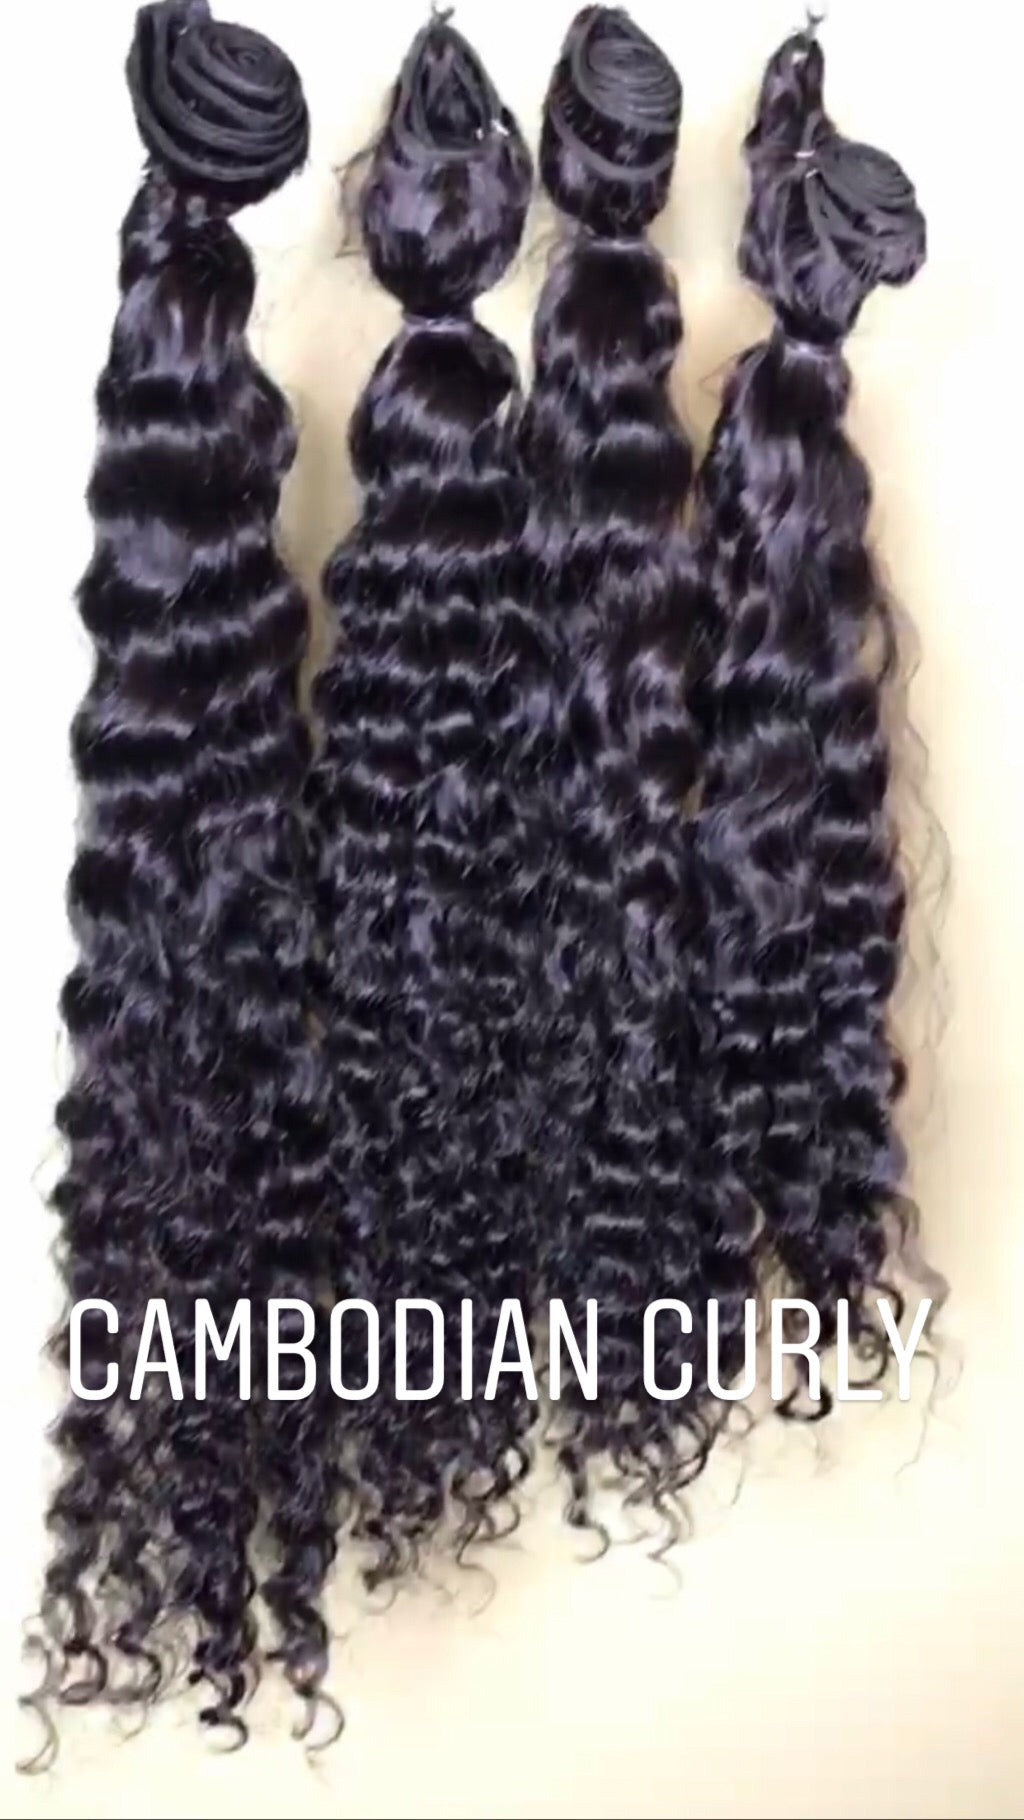 Cambodian Curly Tresses